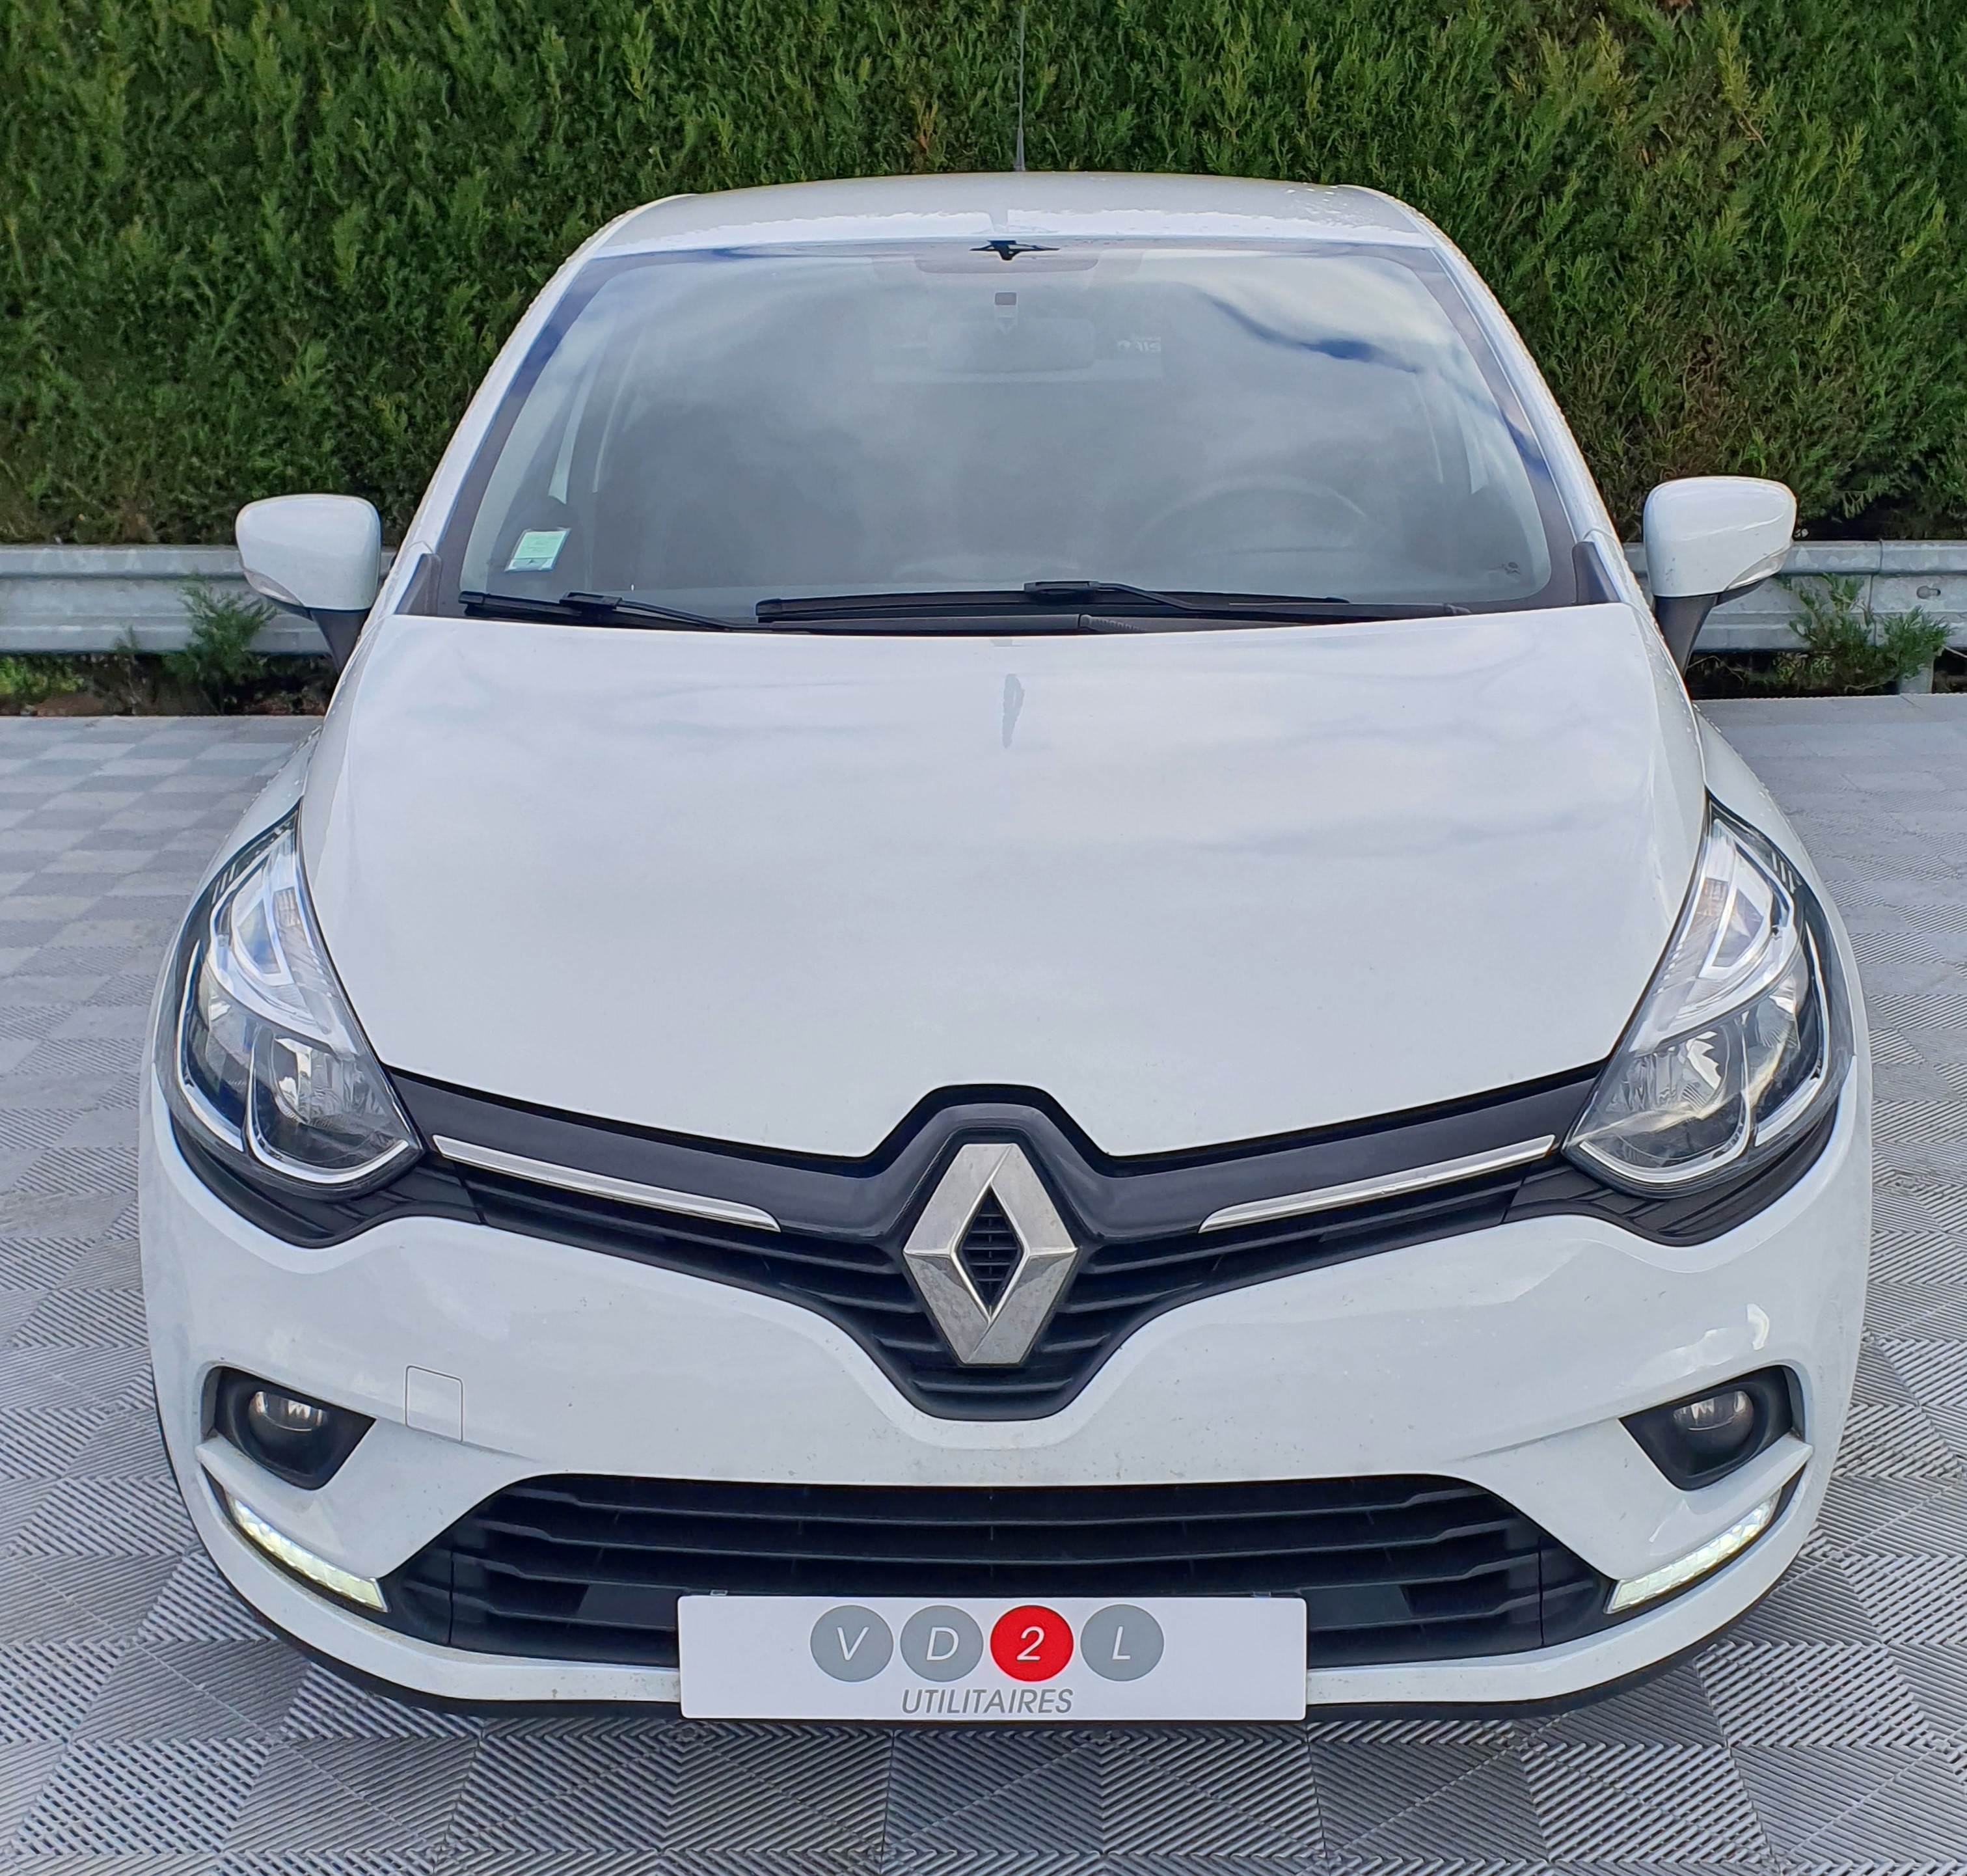 RENAULT CLIO IV SOCIETE 2017 à 6250 € - Photo n°13